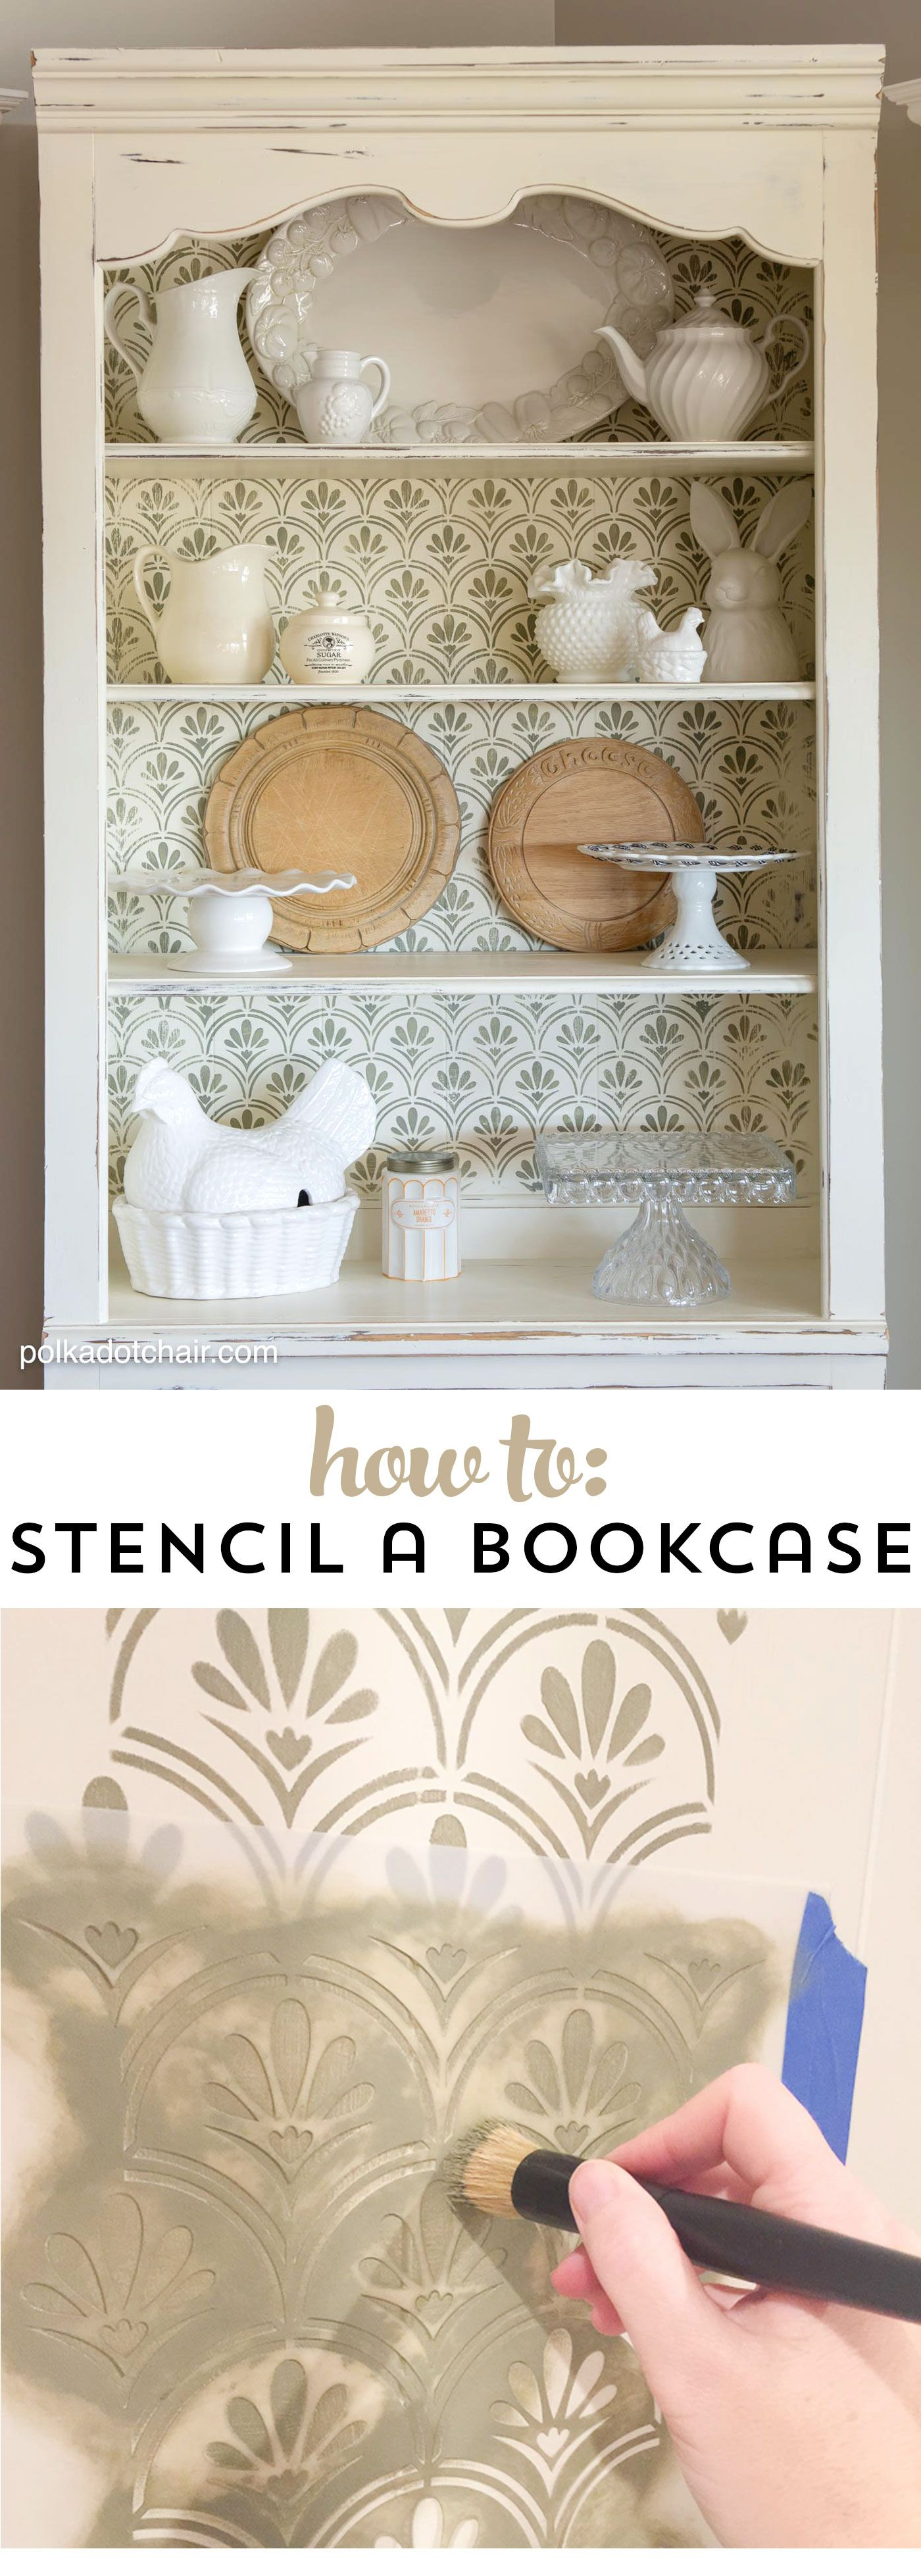 How to's : DIY Stenciled Bookcase & Giveaway